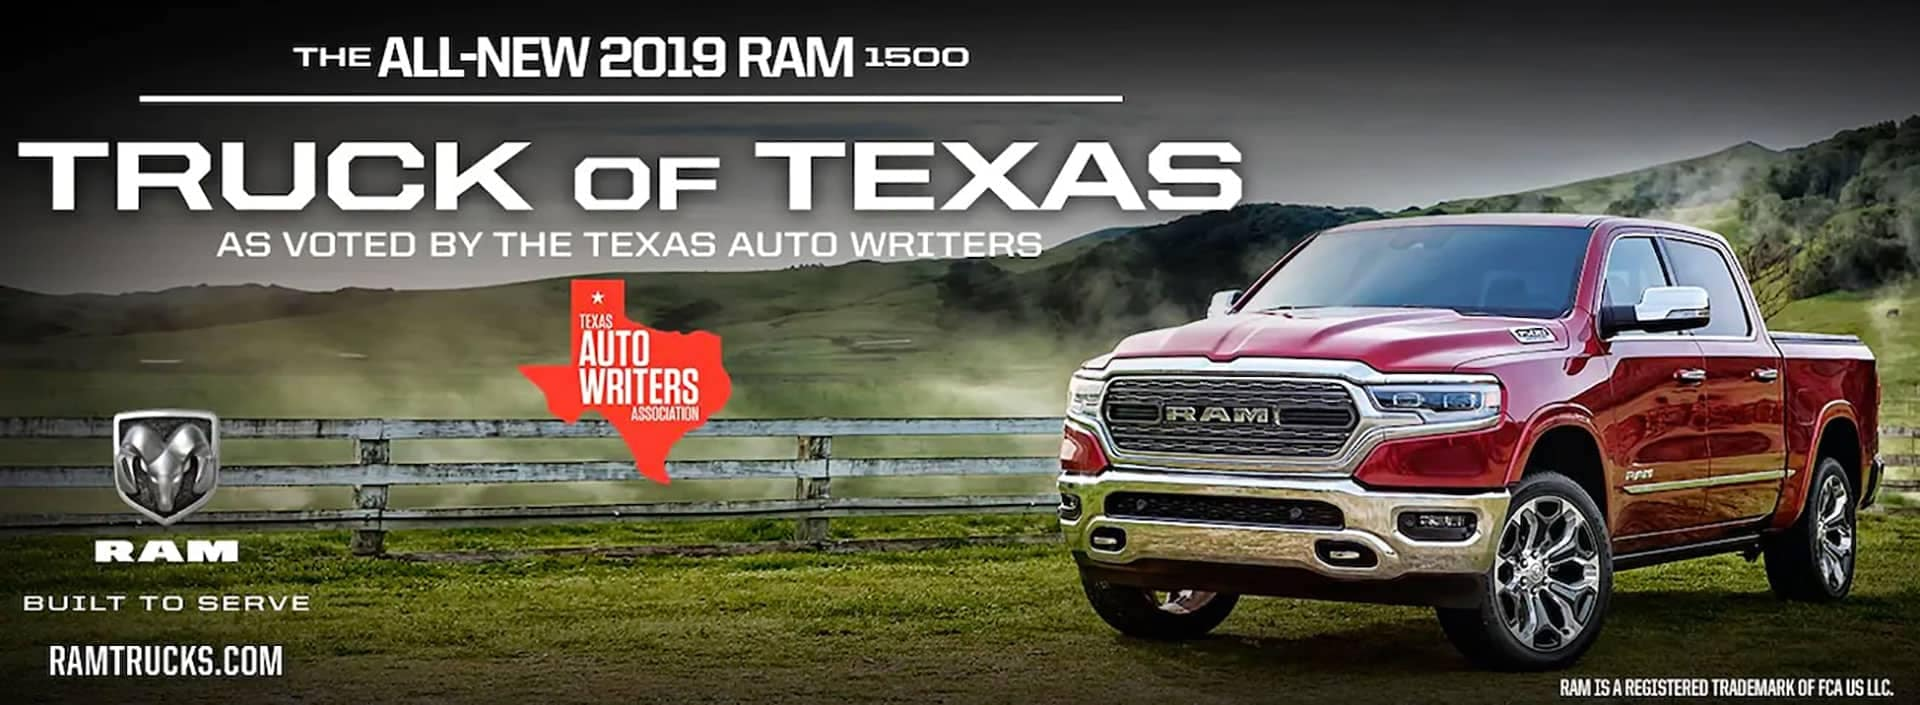 all-new-ram-1500-slider